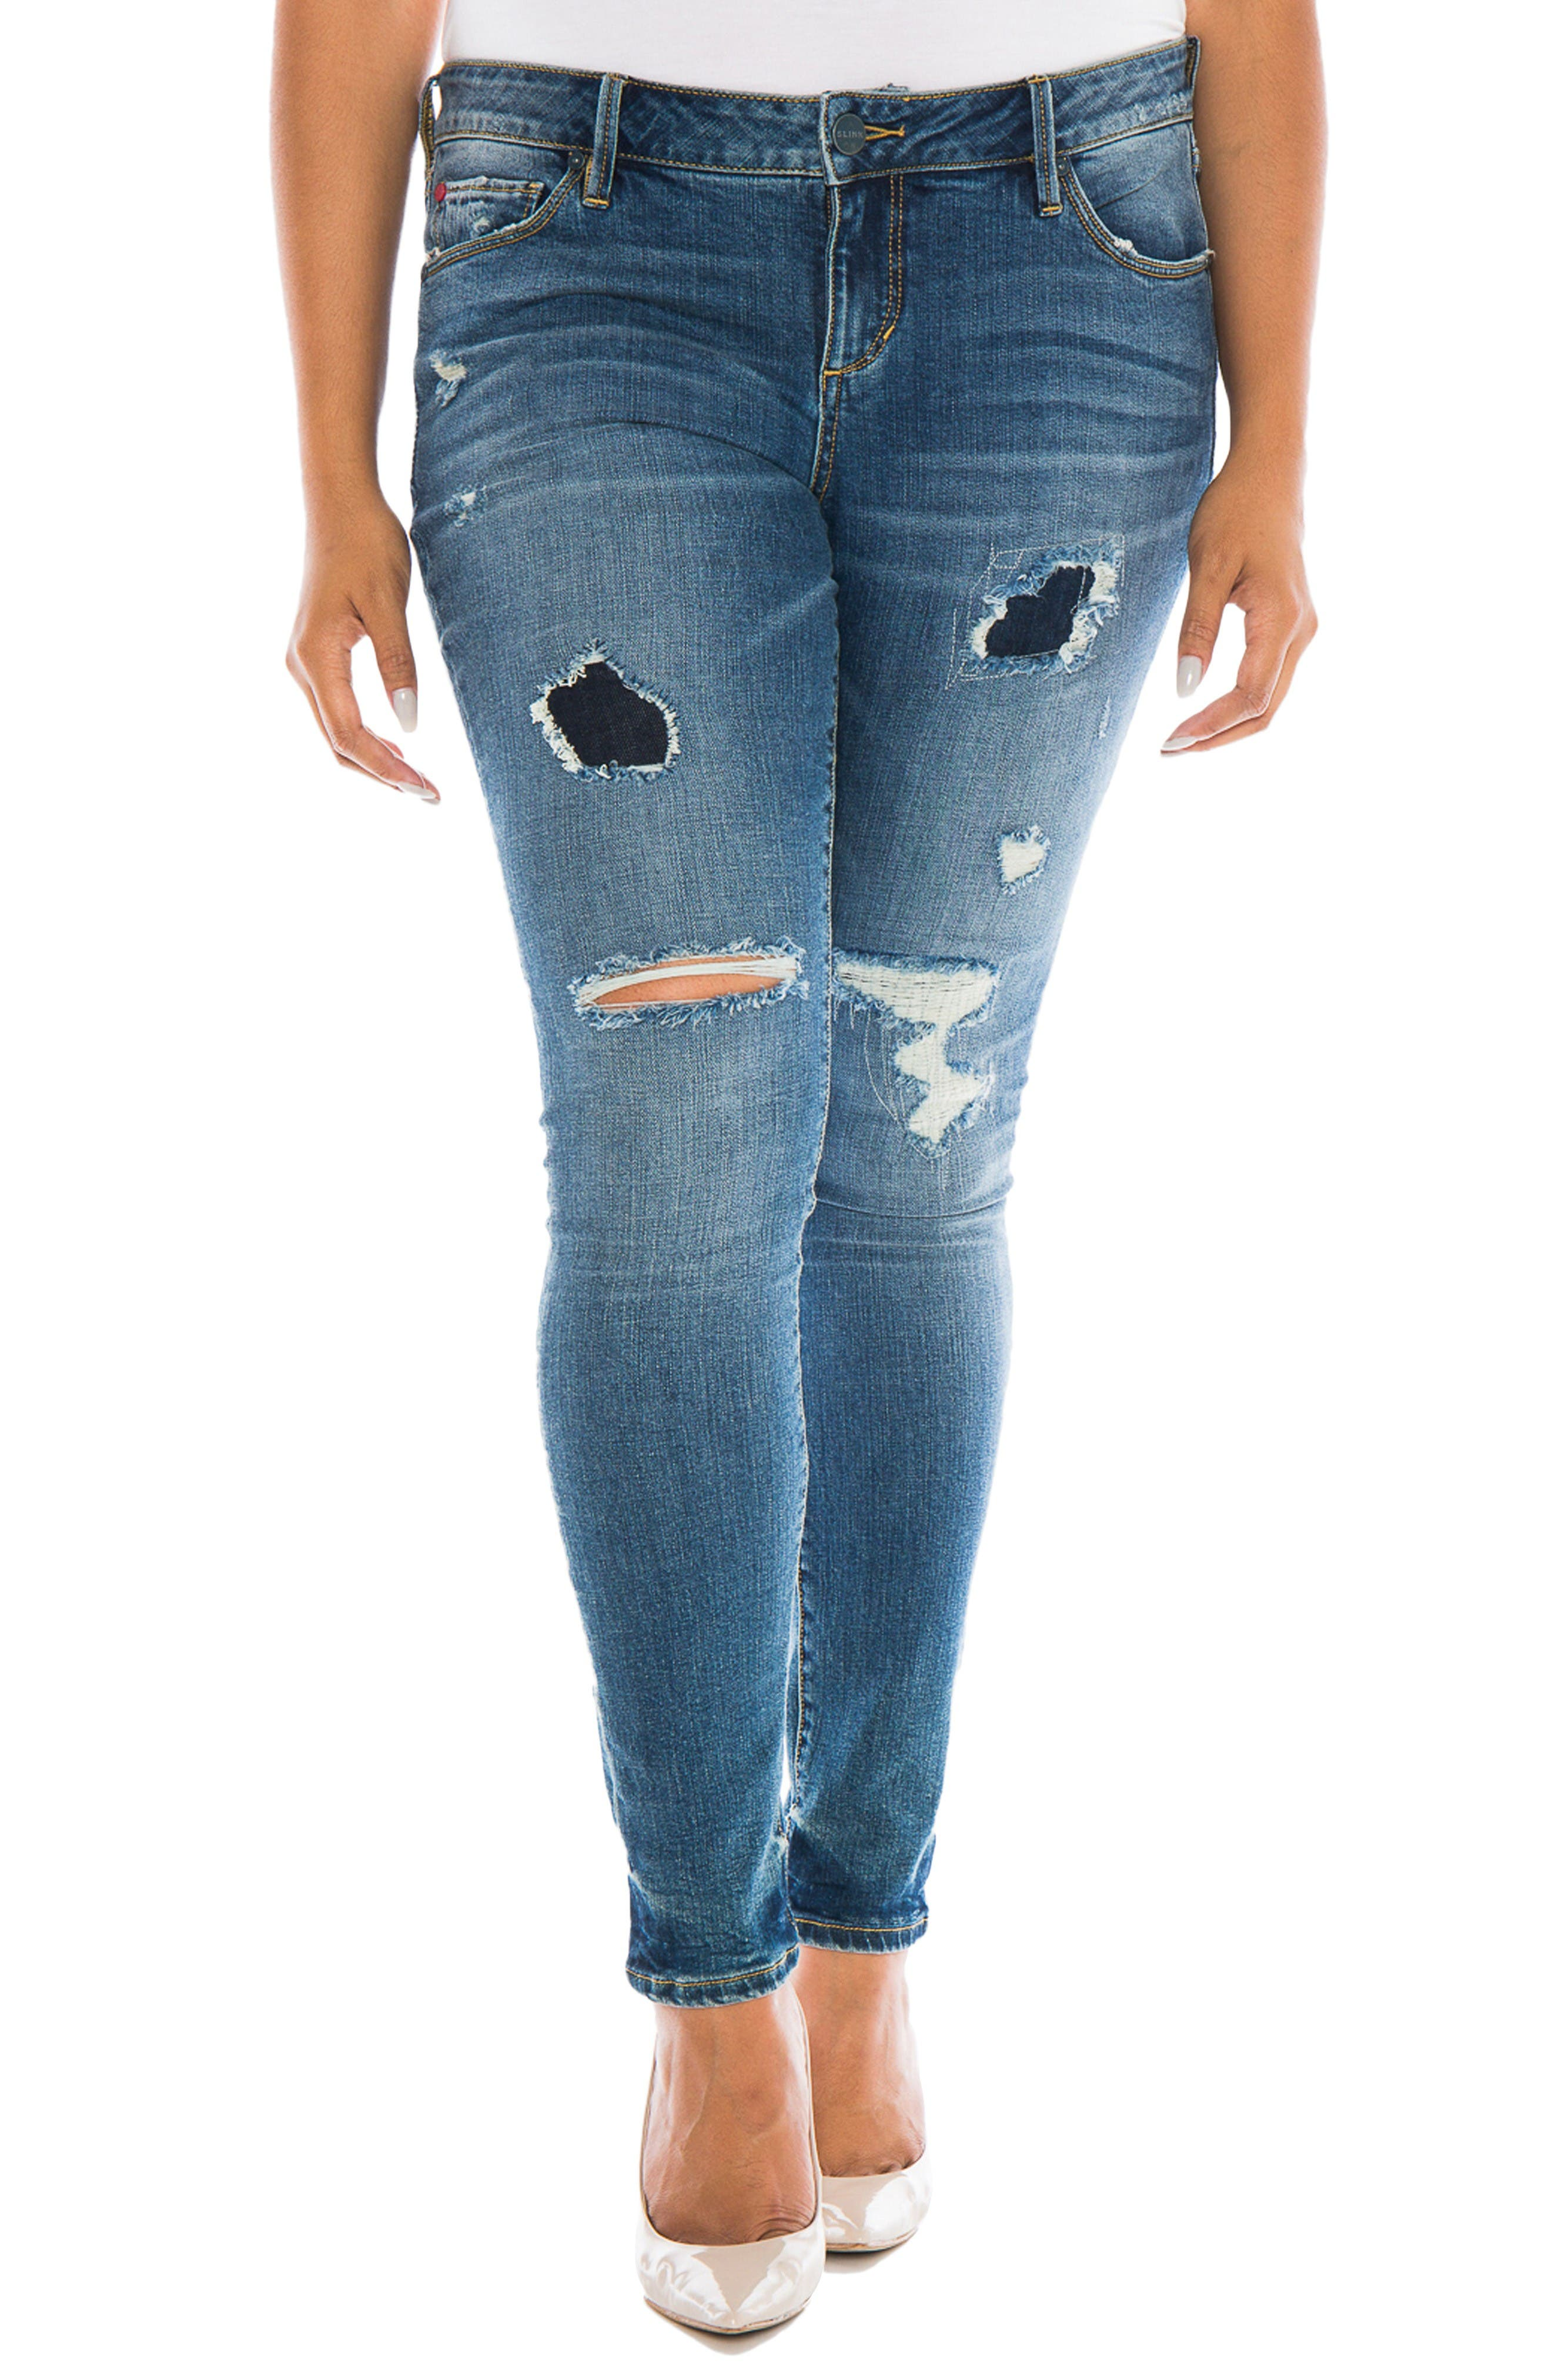 Alternate Image 1 Selected - SLINK Jeans Ripped Skinny Jeans (Joby) (Plus Size)